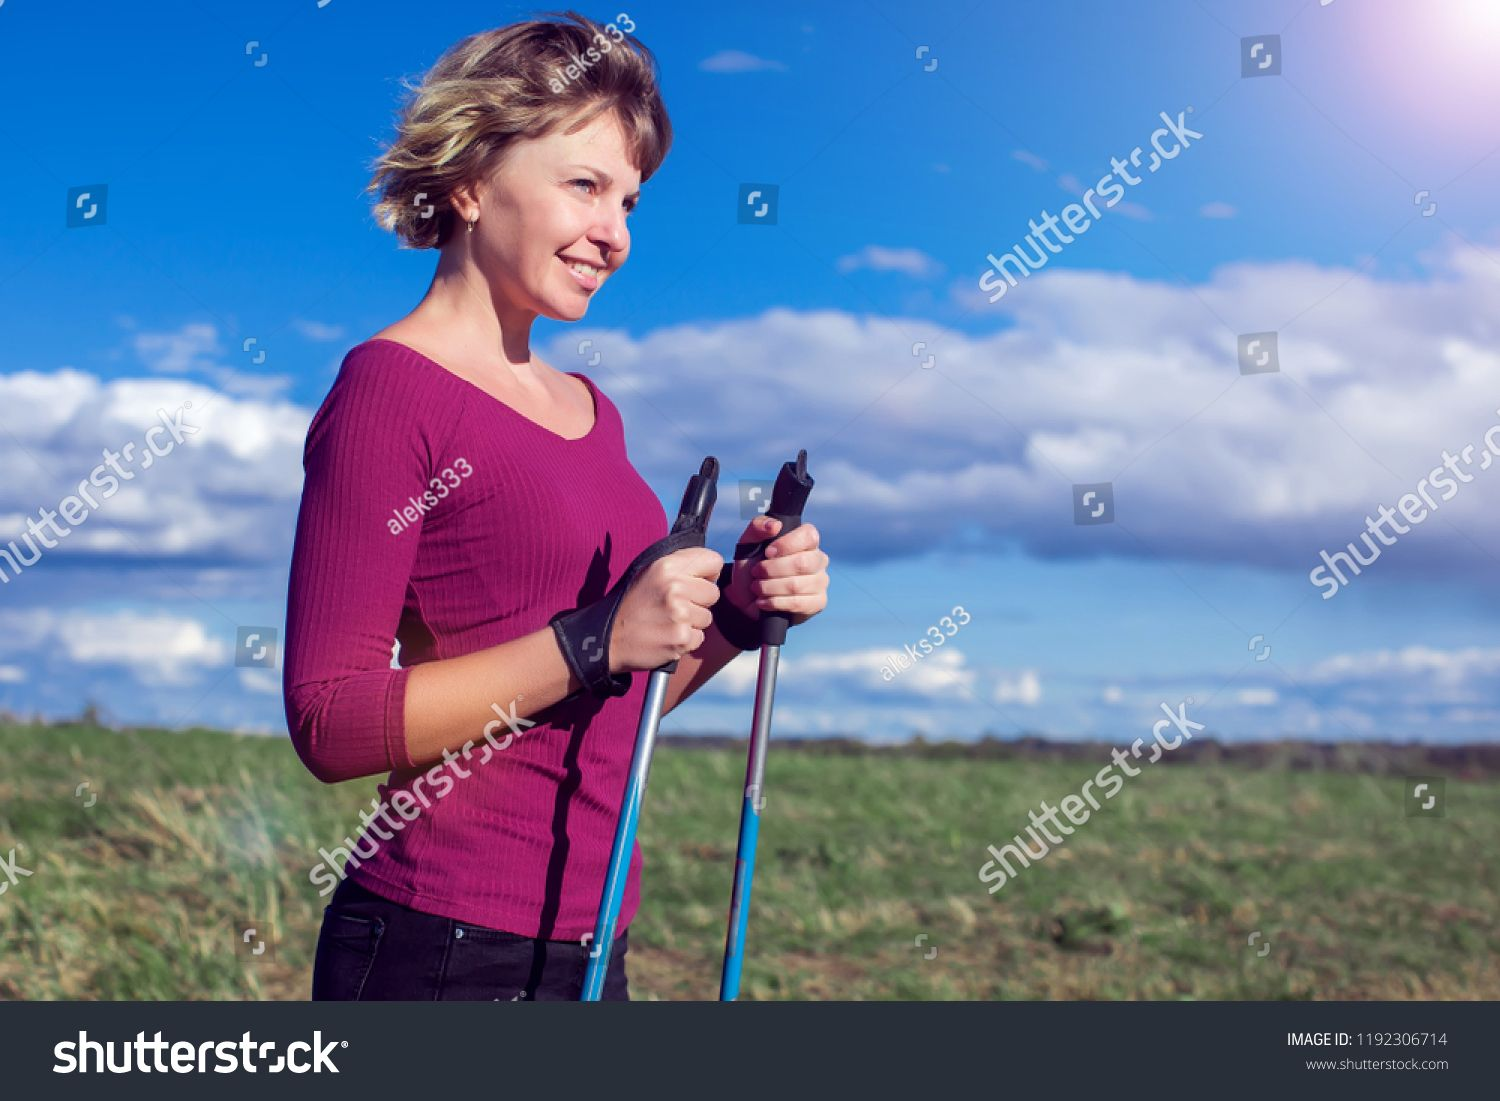 Nordic Walking Exercise Sport Adventure Hiking Concept A